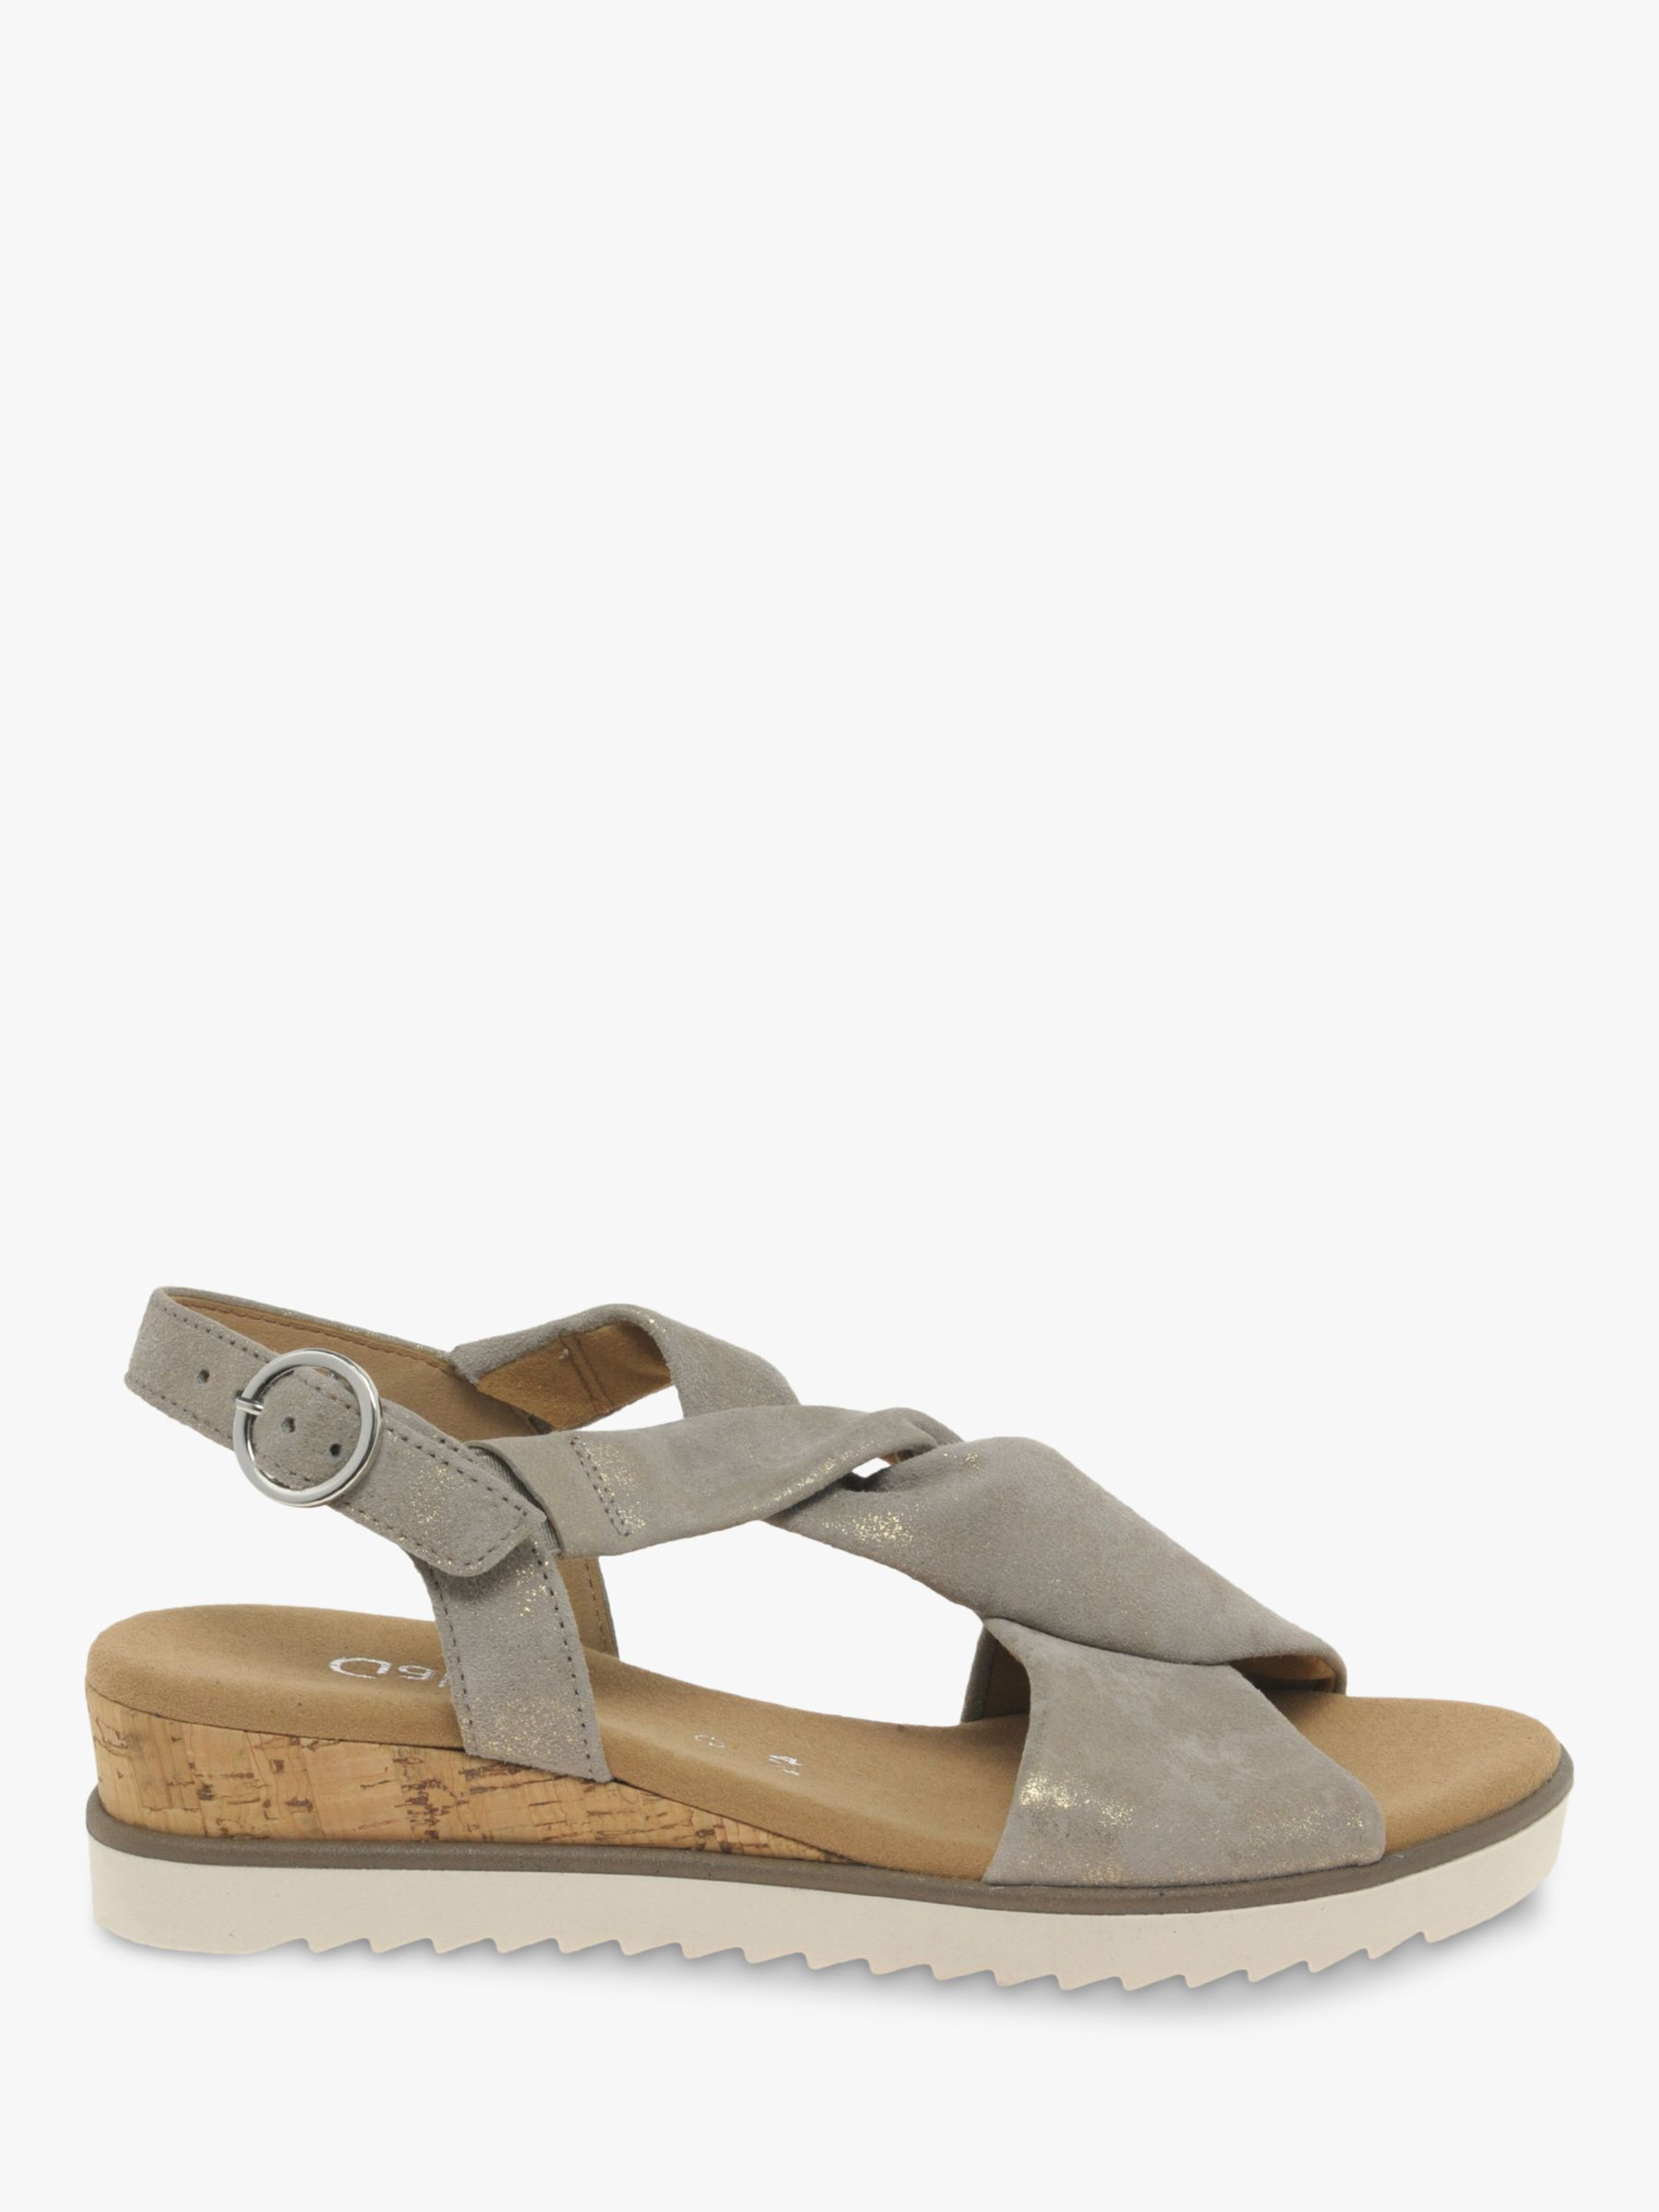 Gabor Gabor Rich Wide Fit Leather Wedge Heel Sandals, Metallic